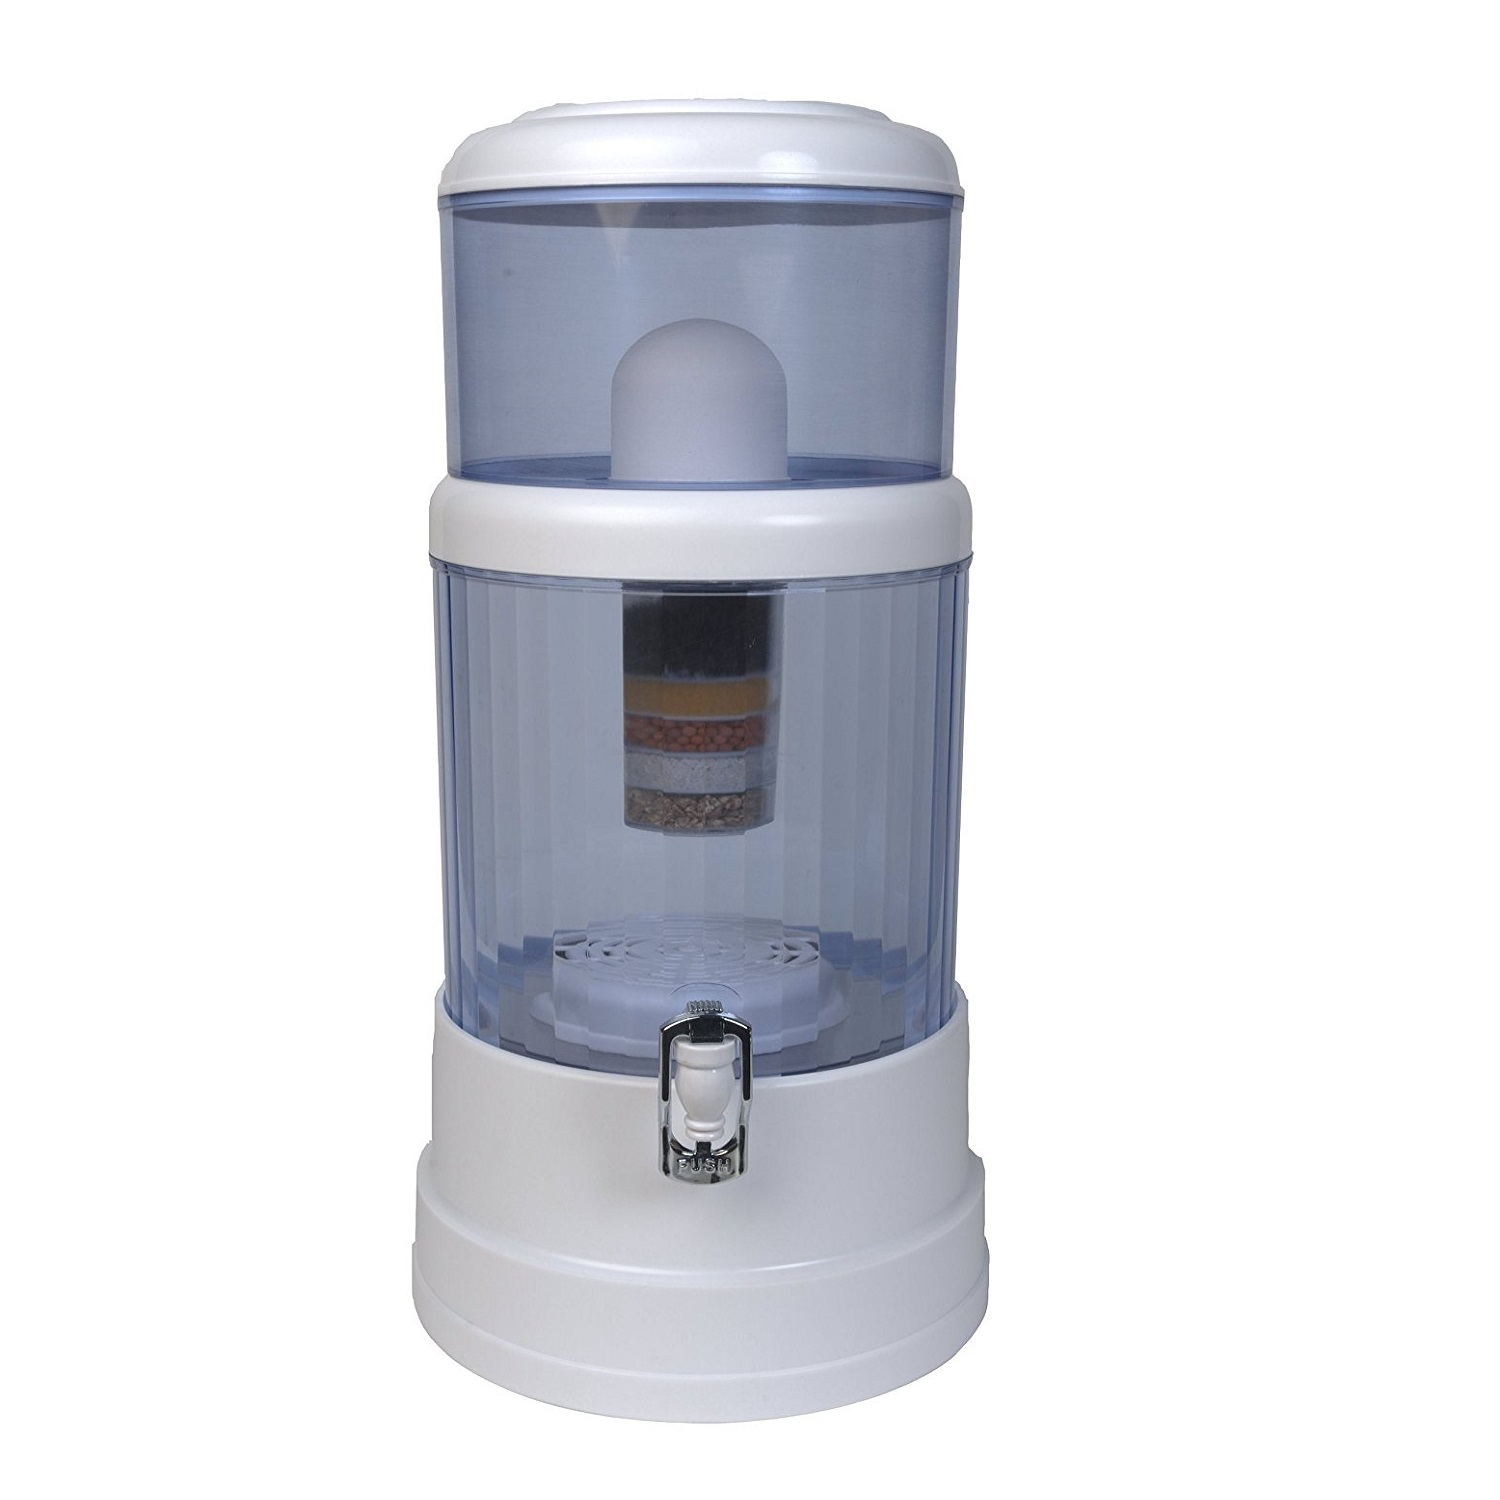 Best Countertop Water Filter Reviews Best Countertop Water Filter System Reviews Our Top 7 Picks